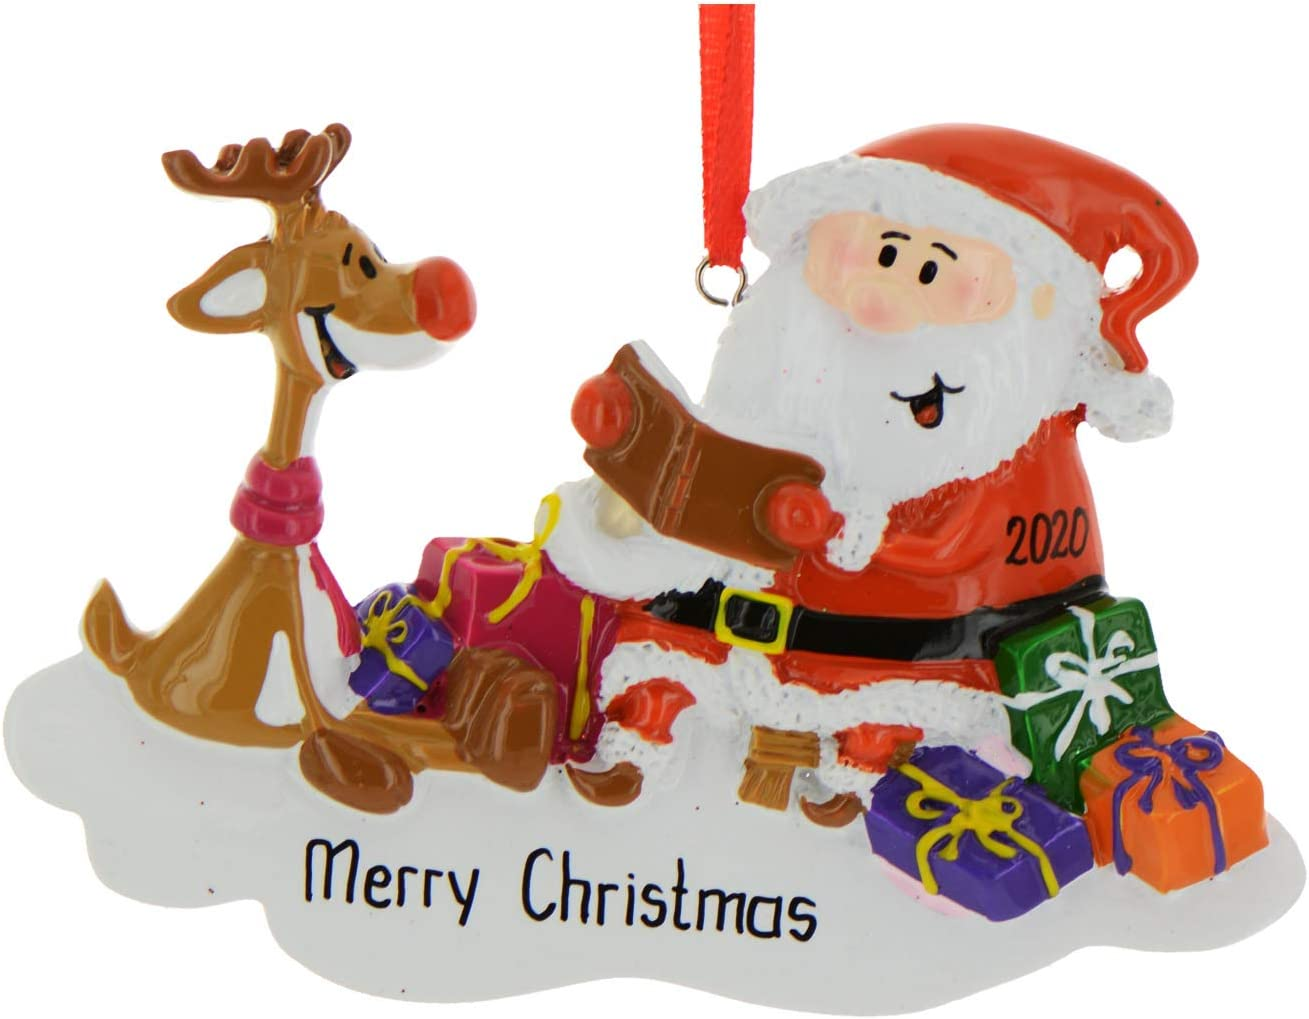 Christmas 2020 Readings For Kids Amazon.com: Personalized Santa Reading Book to Rudolph Christmas